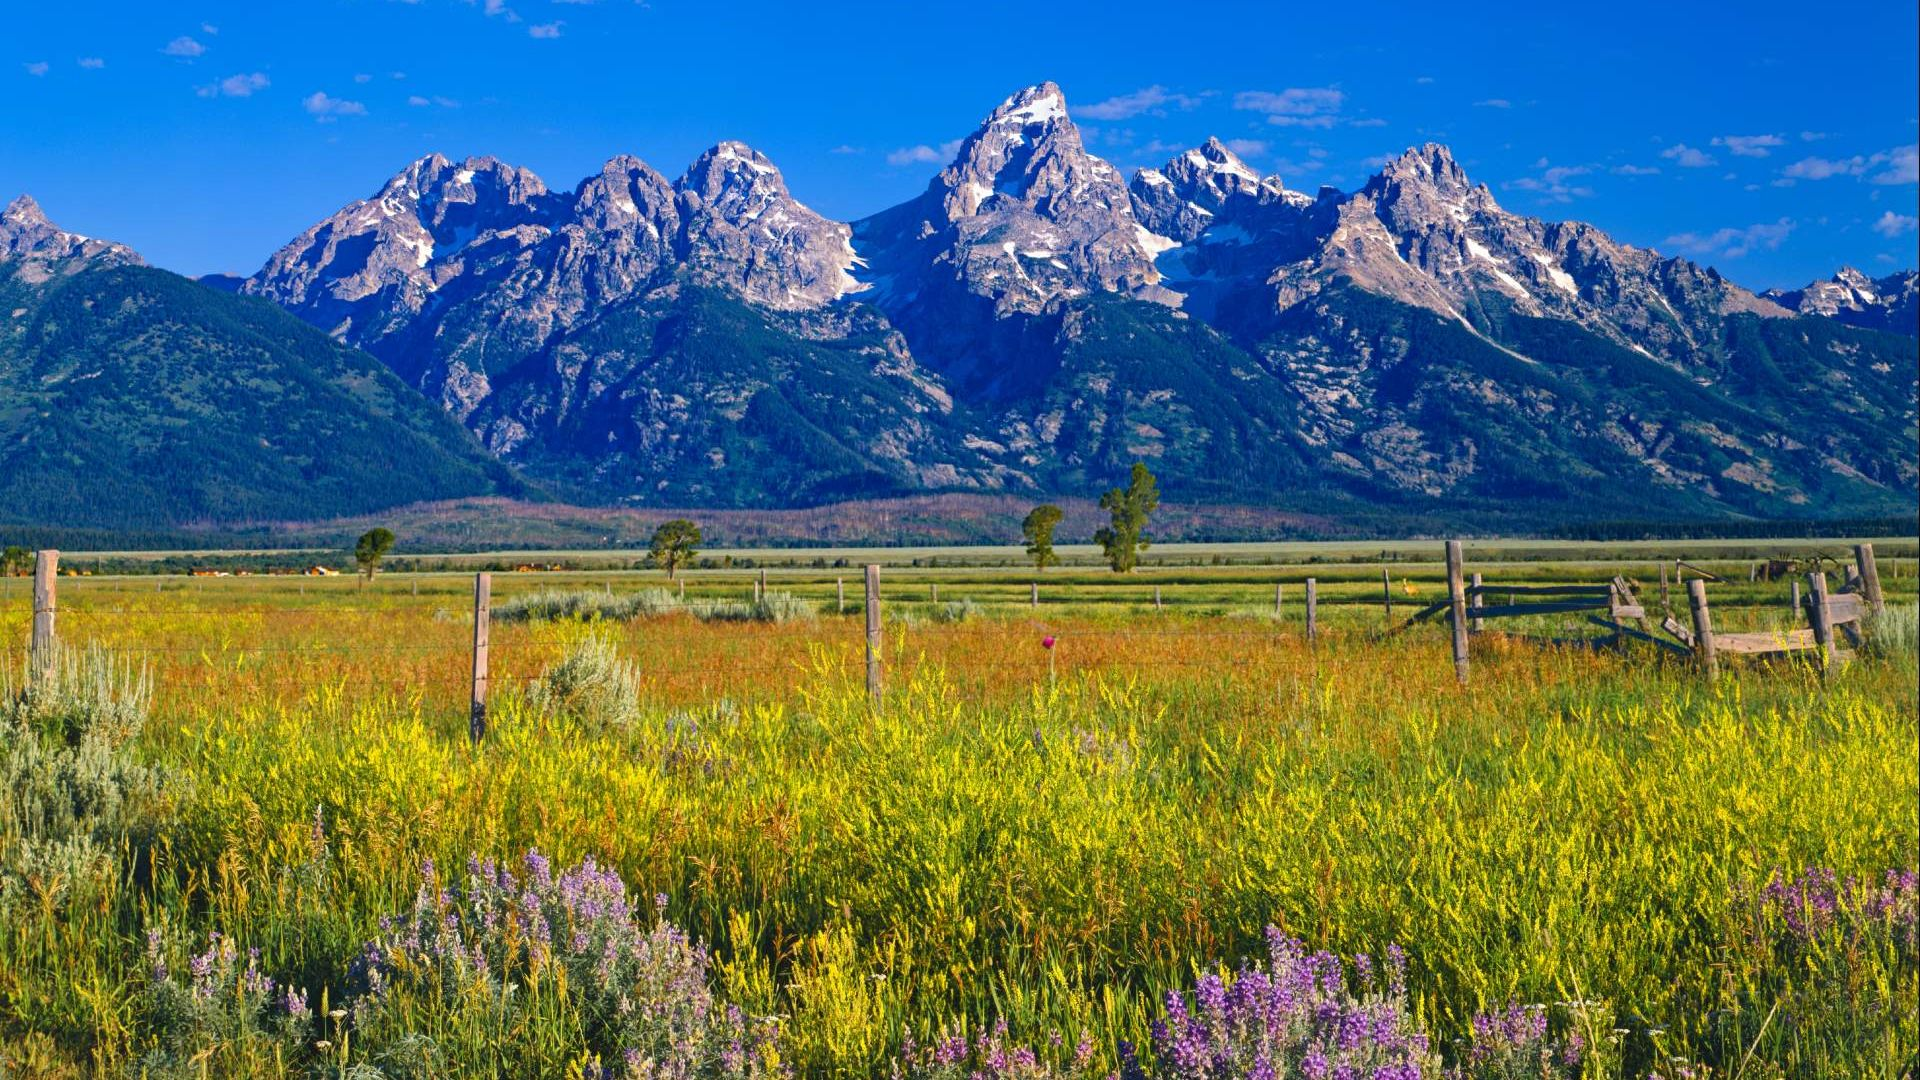 Visit the most iconic mountain town in the West: Jackson Hole, WY, where there's something for everyone.